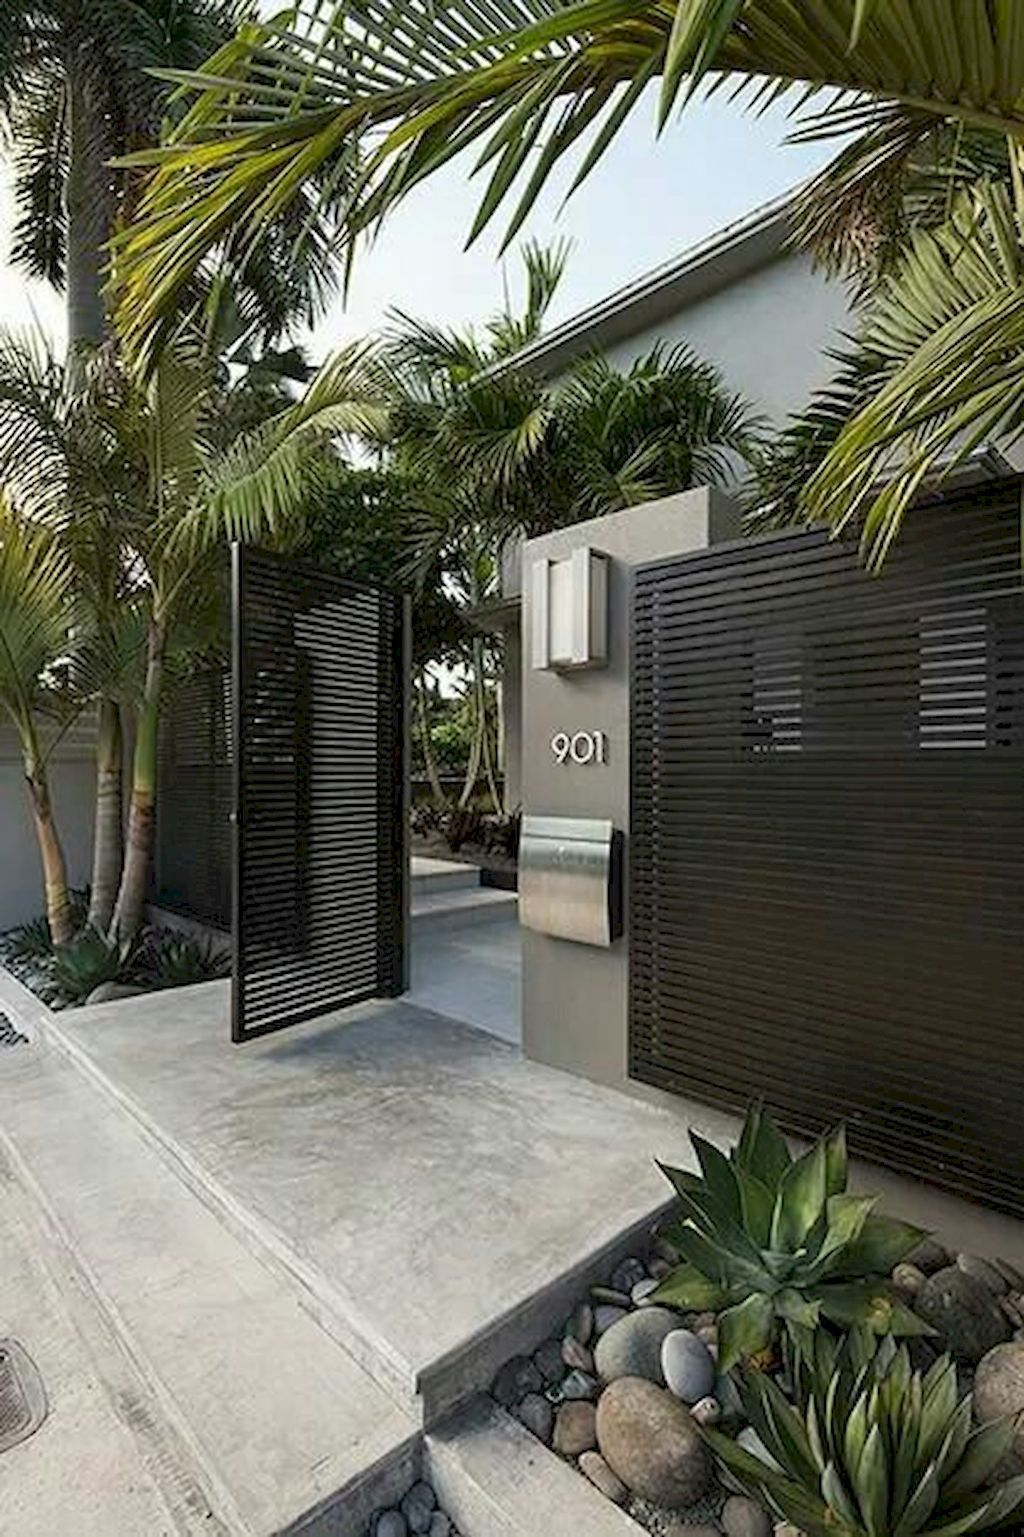 Awesome 80 Simple And Fresh Front Yard Landscaping Ideas Https Decorapatio Com 2017 07 12 80 Si Modern Fence Design Entrance Gates Design Modern House Design